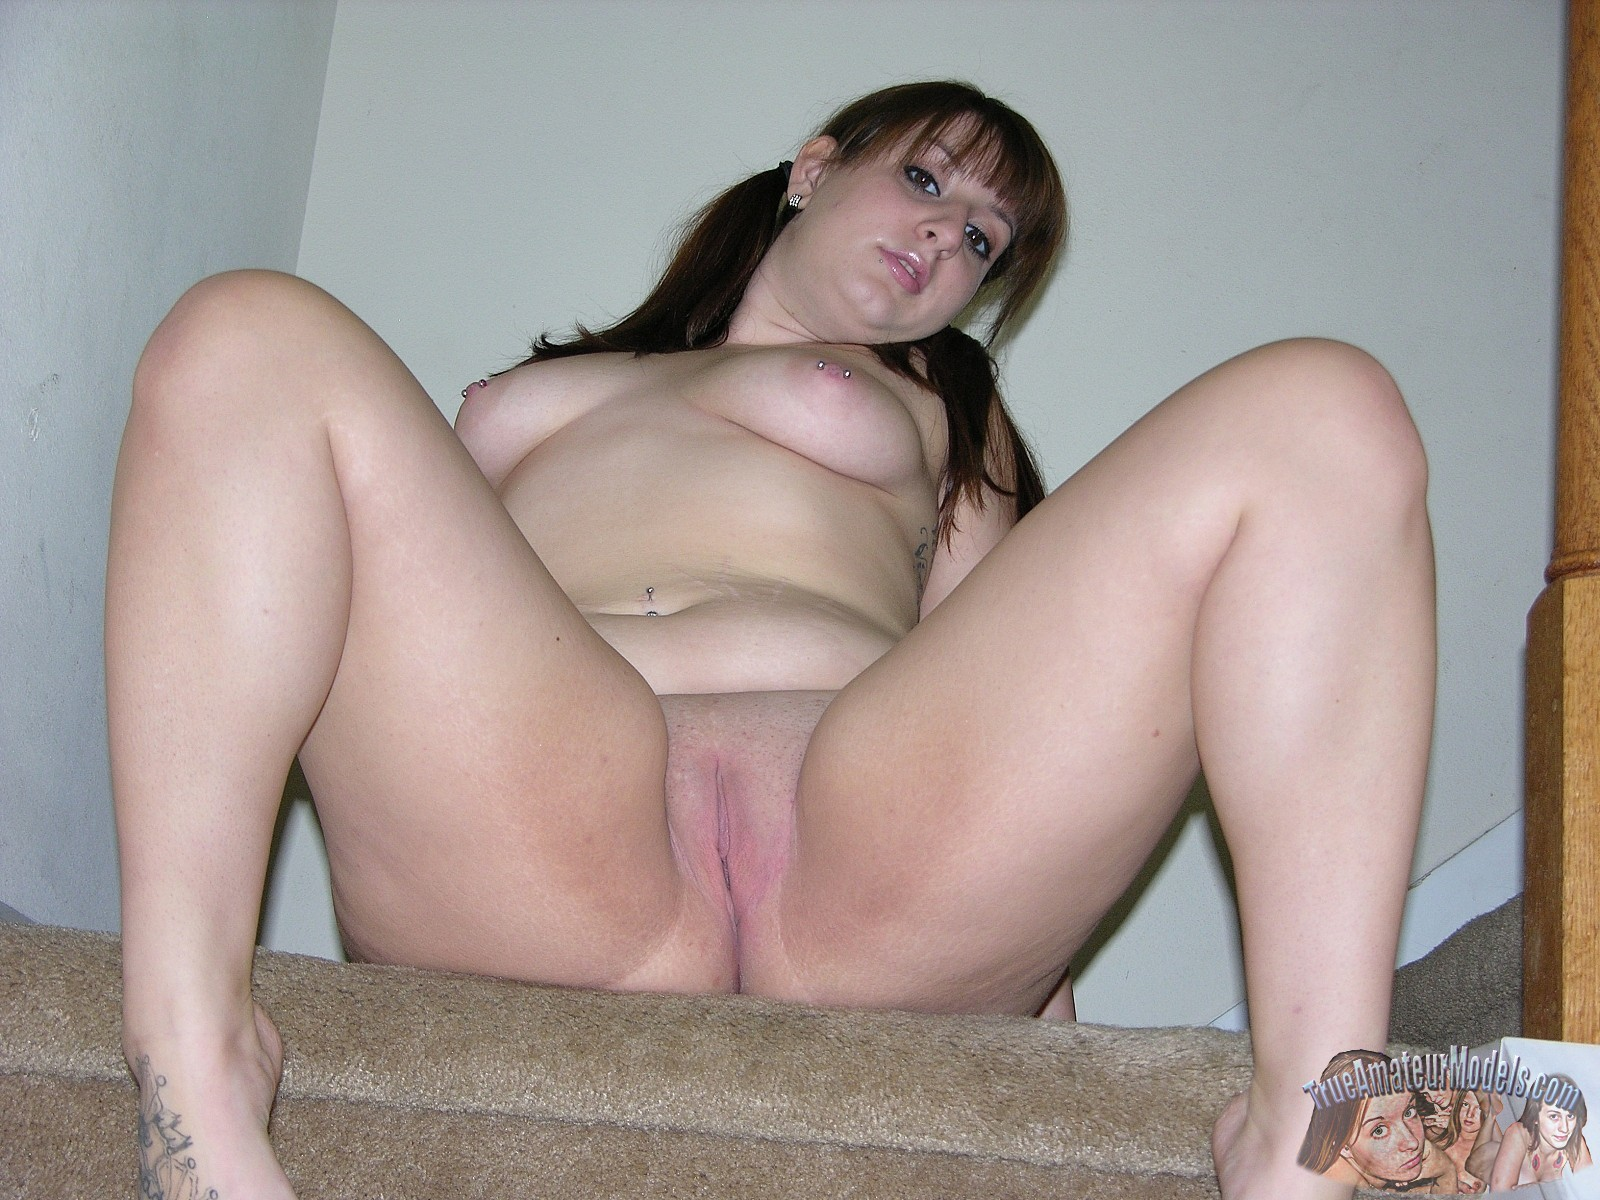 chubby nude models